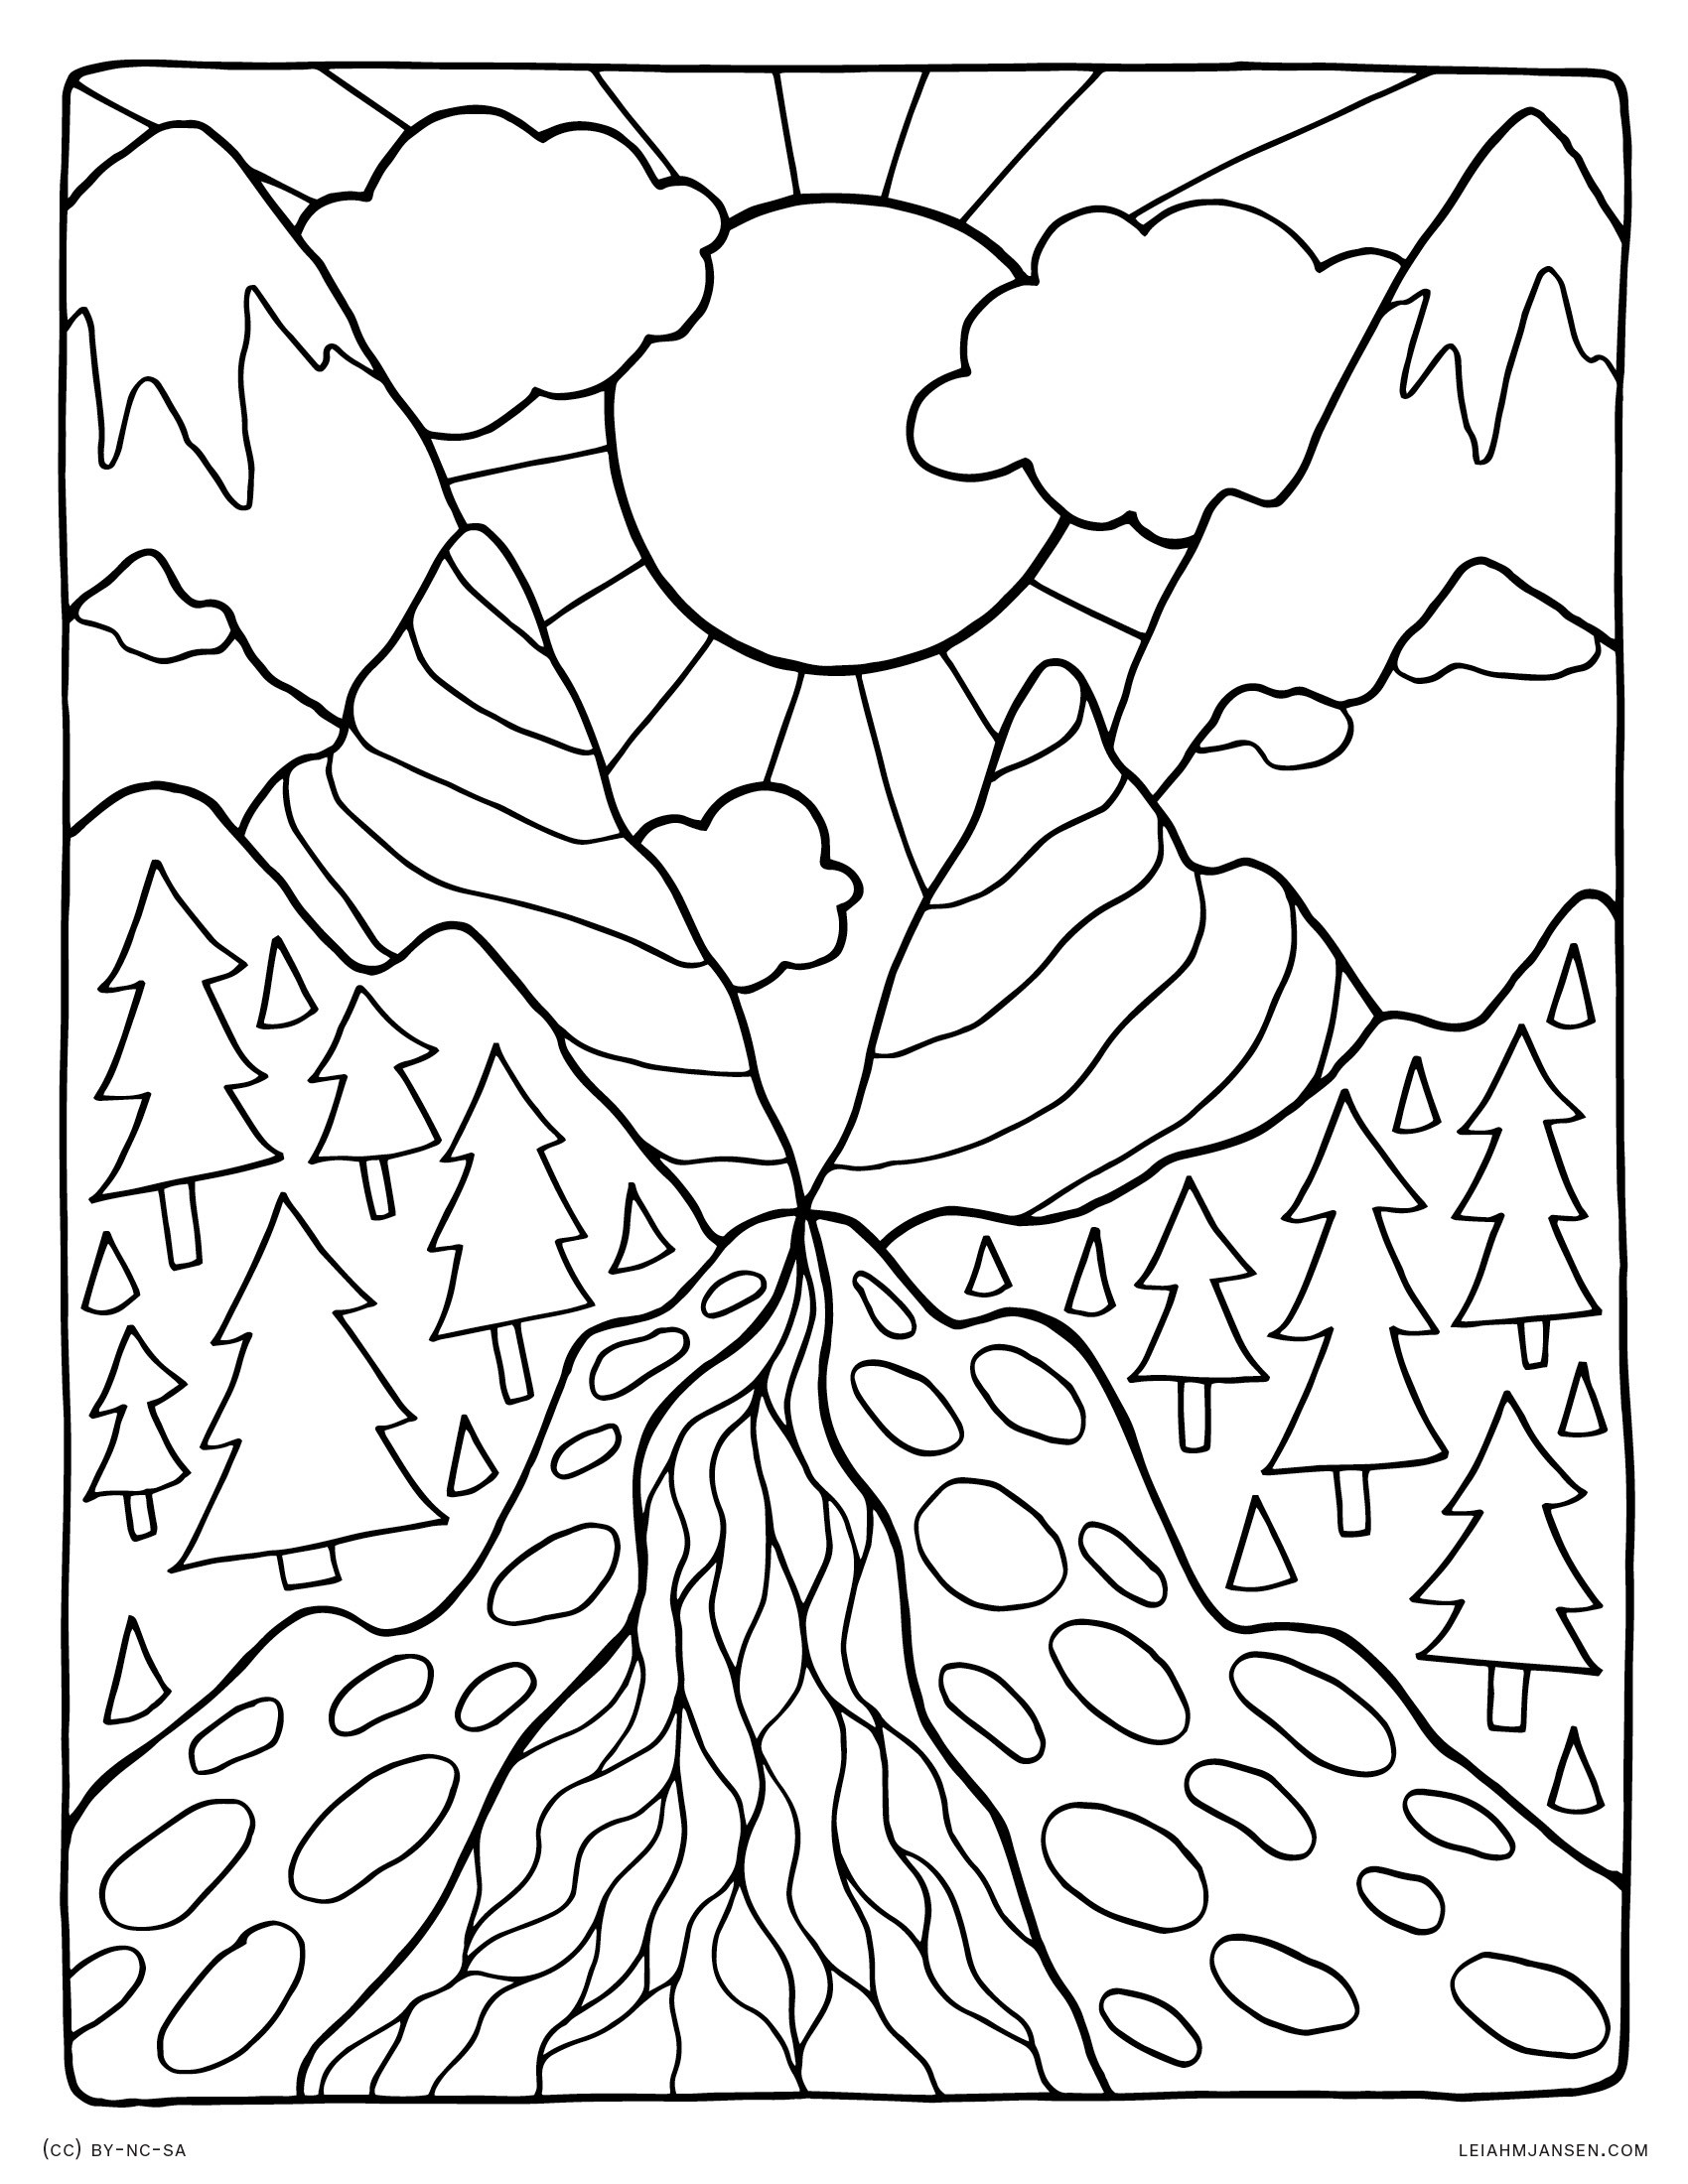 Detailed Landscape Coloring Pages For Adults At